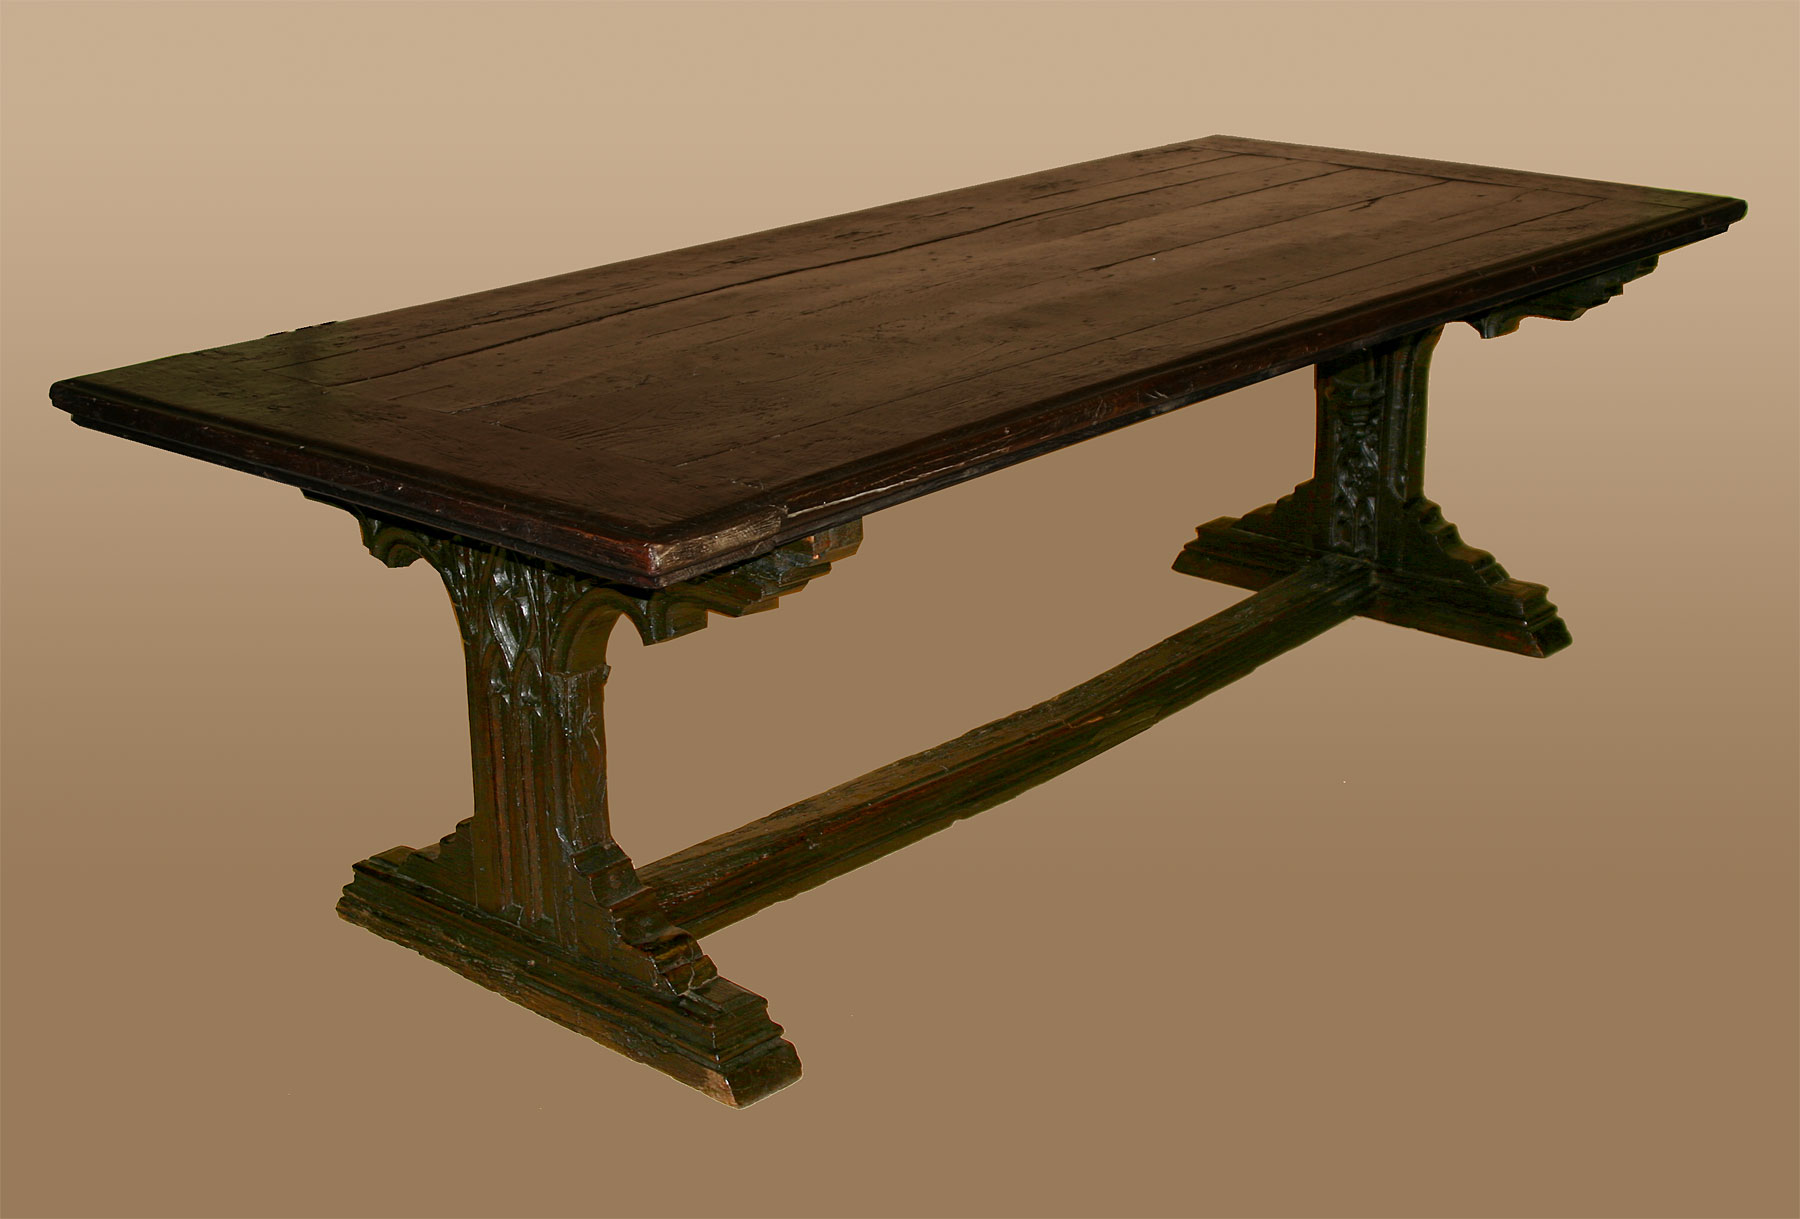 Rare Northern European Gothic period refectory table For  : ori174619974Rare Northern European Gothic period refectory tableitem811 from www.antiques.com size 1800 x 1219 jpeg 160kB